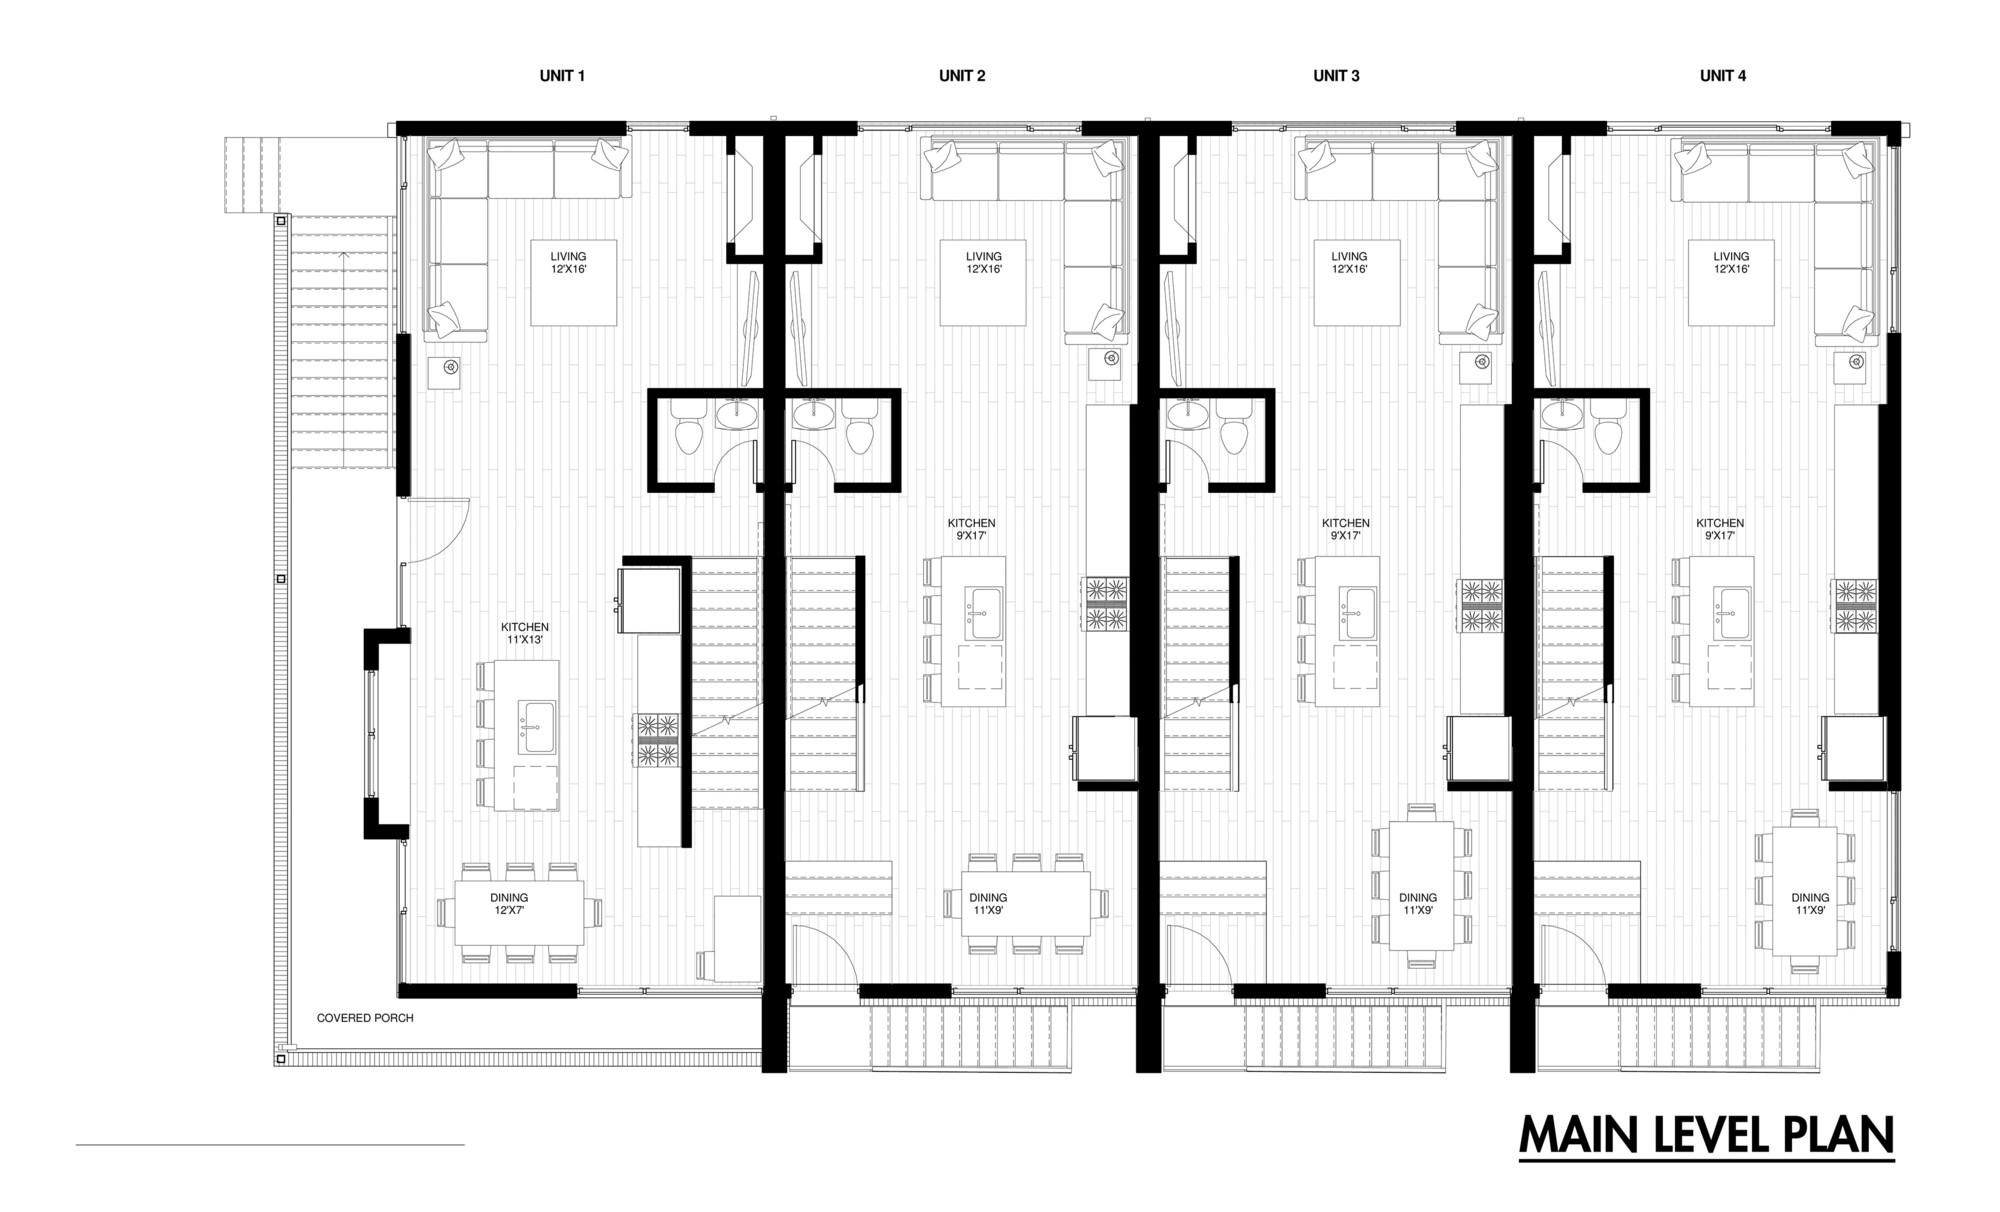 5588d8e7e58ece1c290000c3 Emerson Rowhouse Meridian 105 Architecture Floor Plan on large victorian floor plans